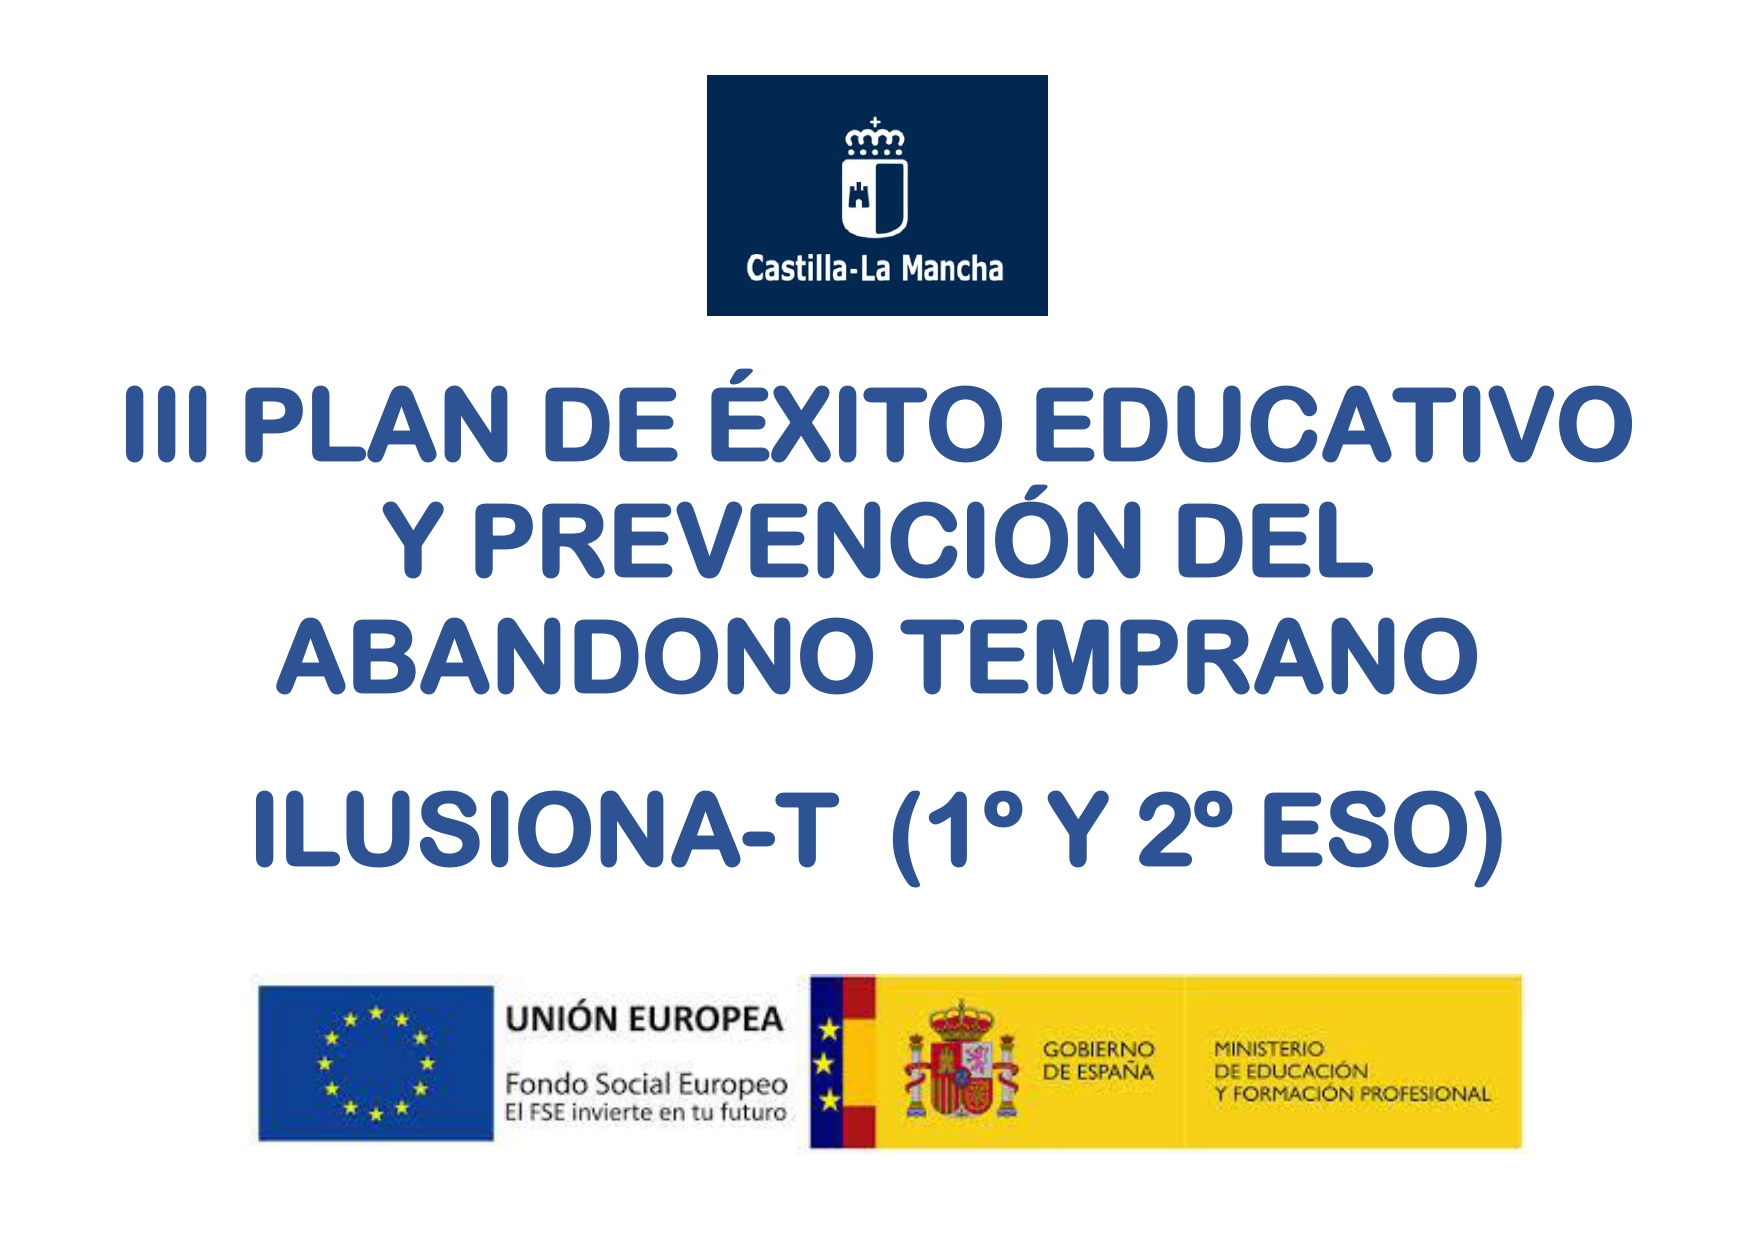 III PLAN DE EXITO EDUCATIVO WEB